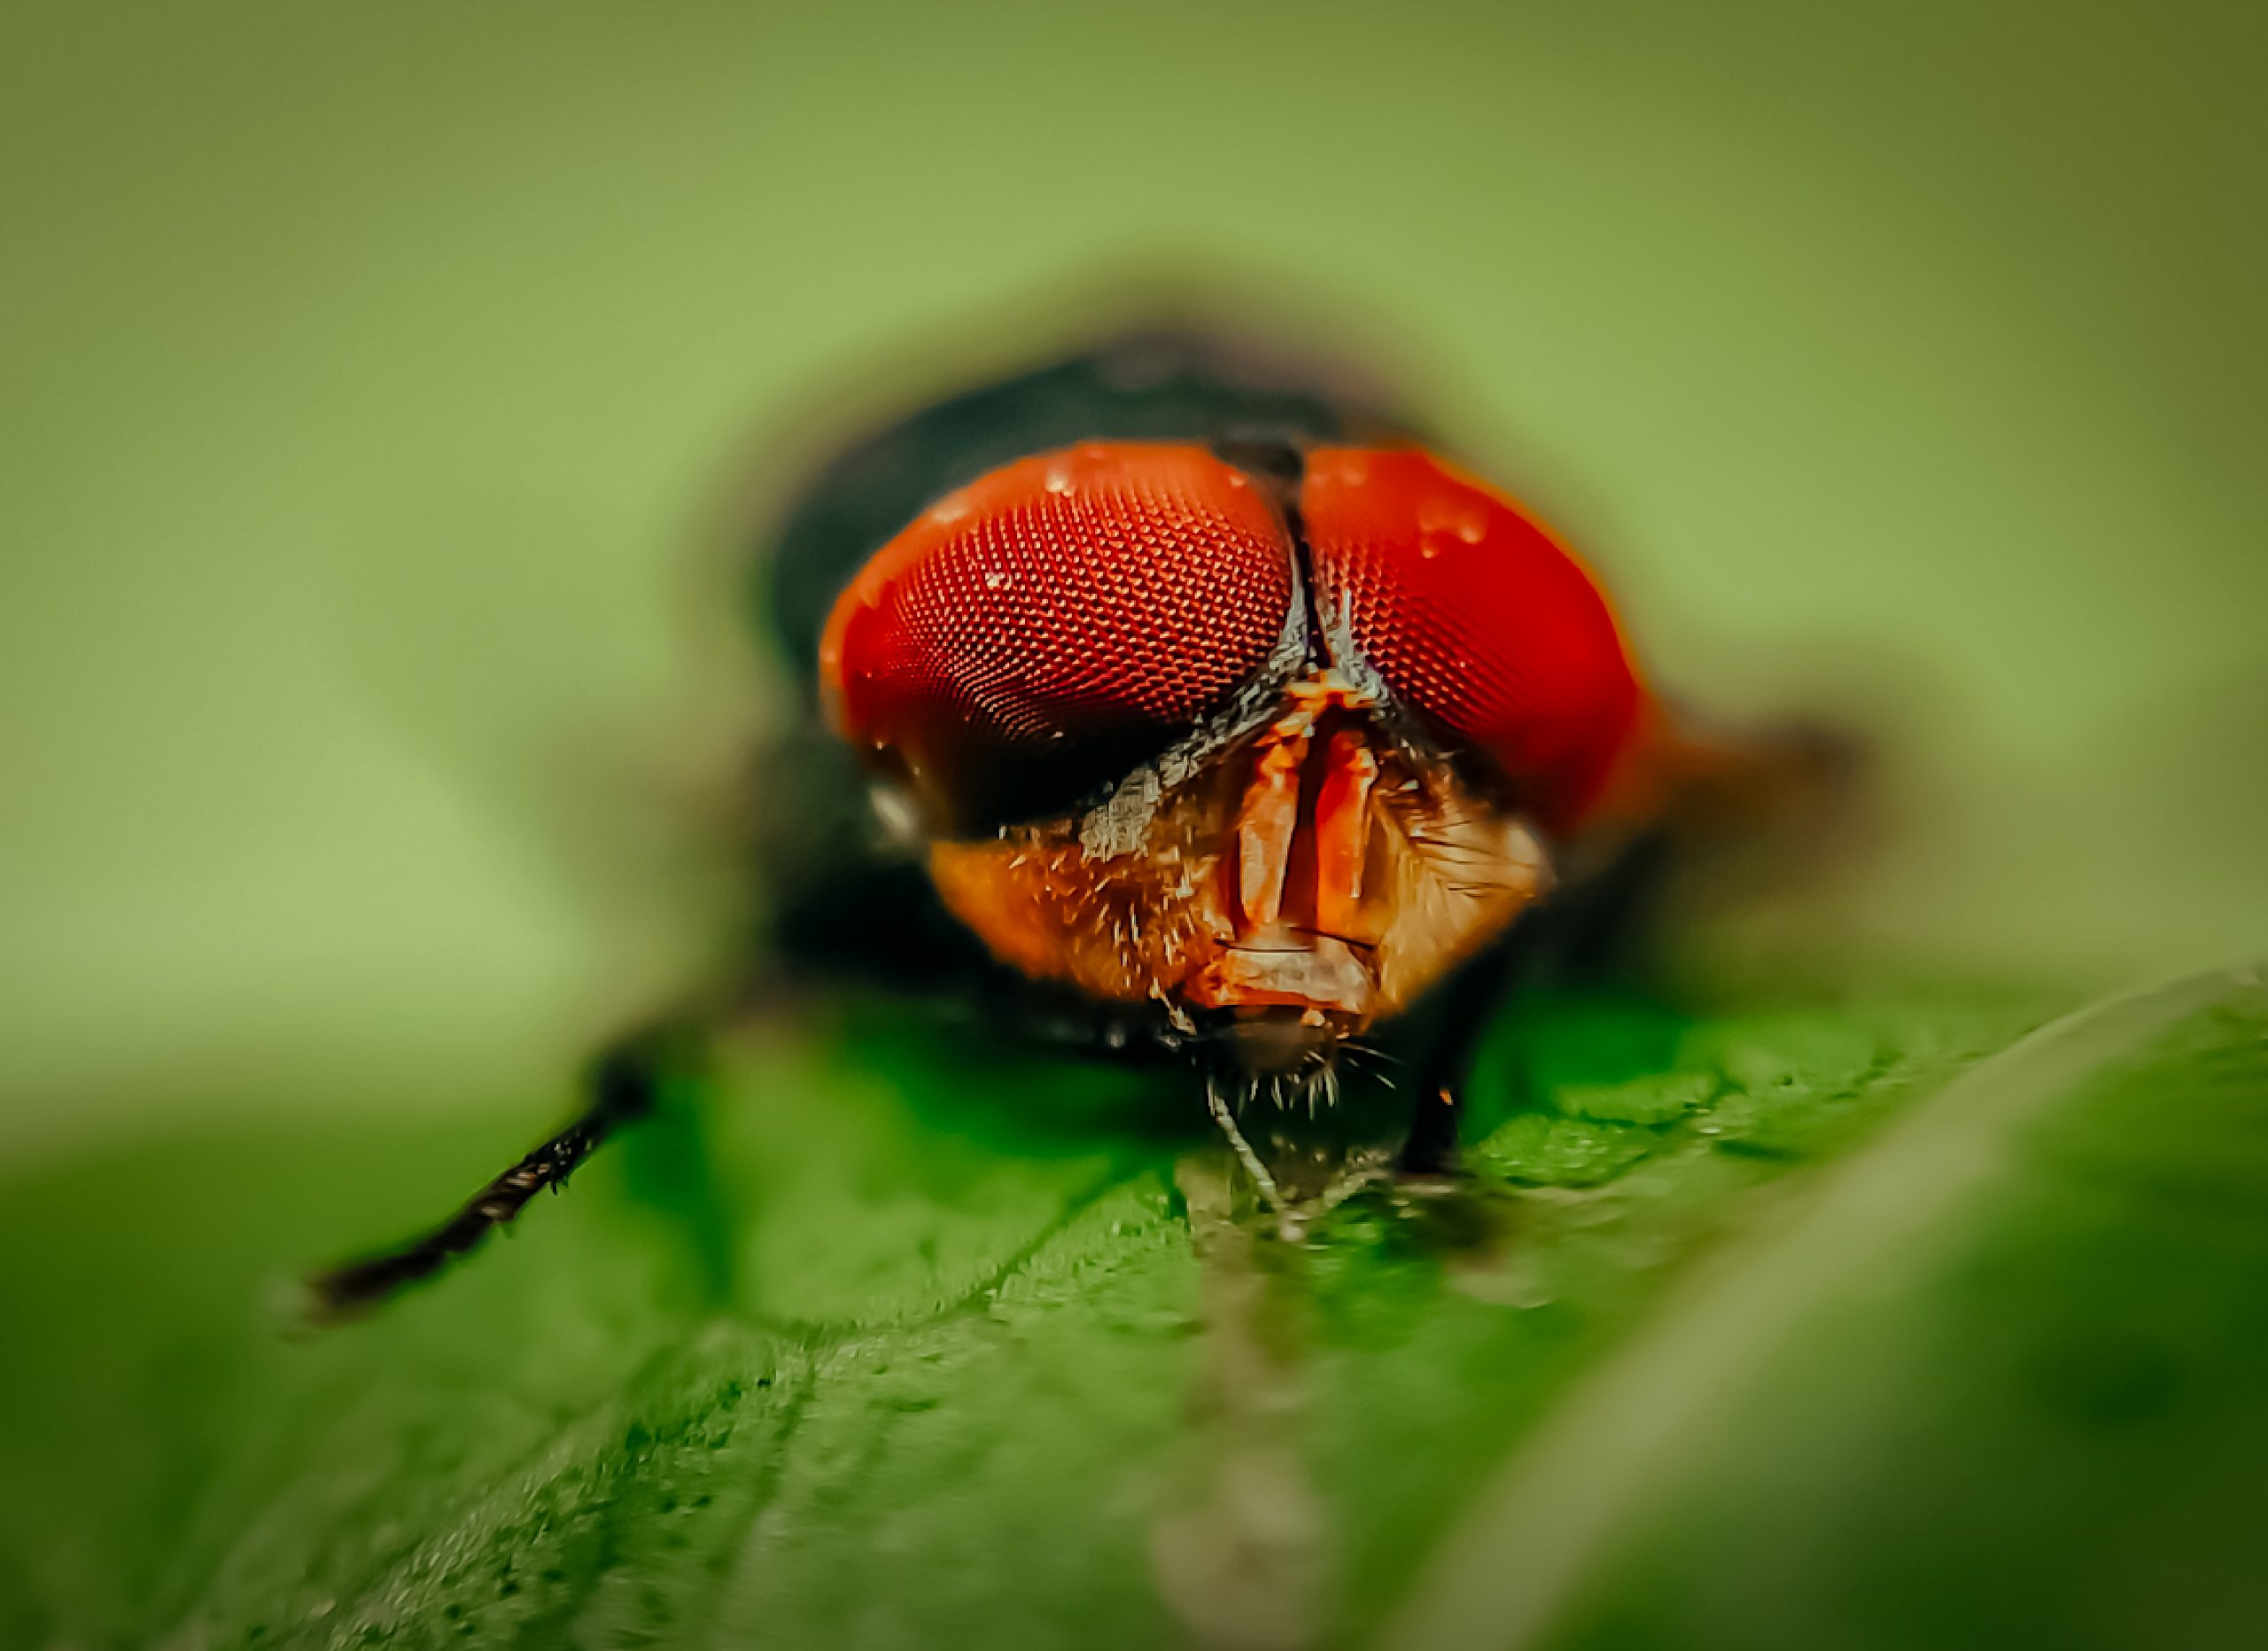 Zoomed landscape of a fly